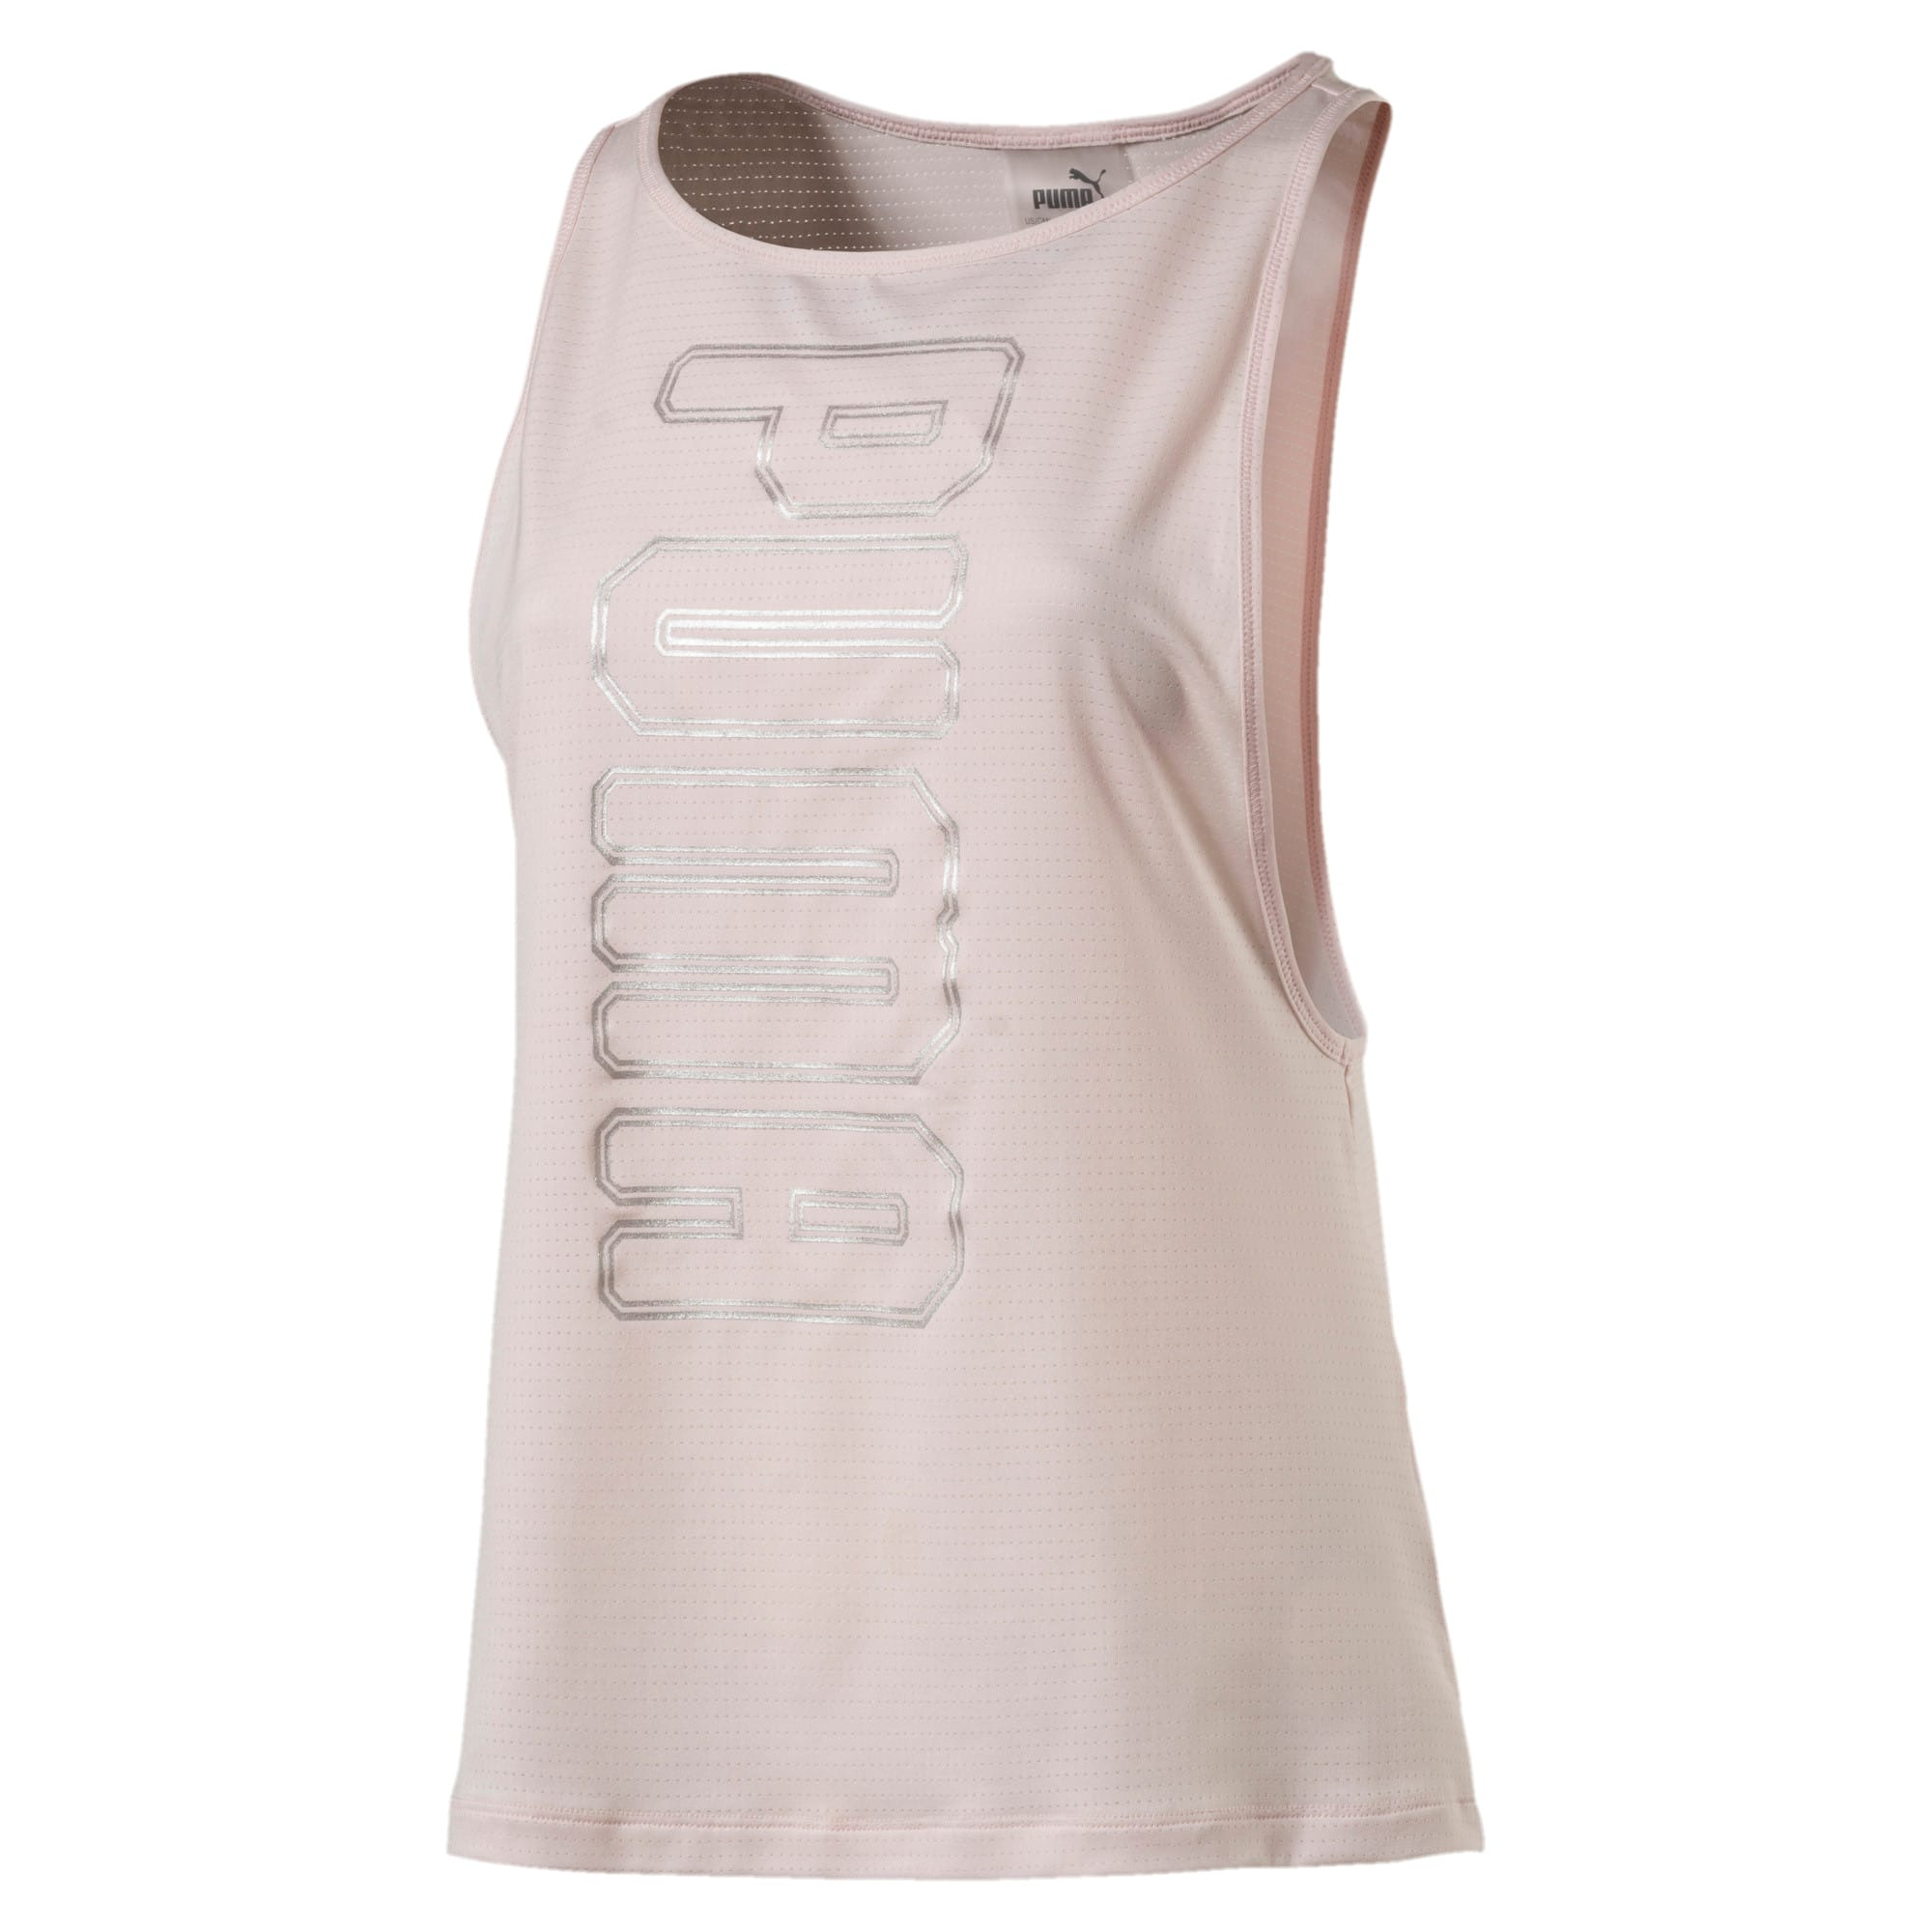 Thumbnail 1 of Spark Women's Tank Top, Pearl, medium-IND